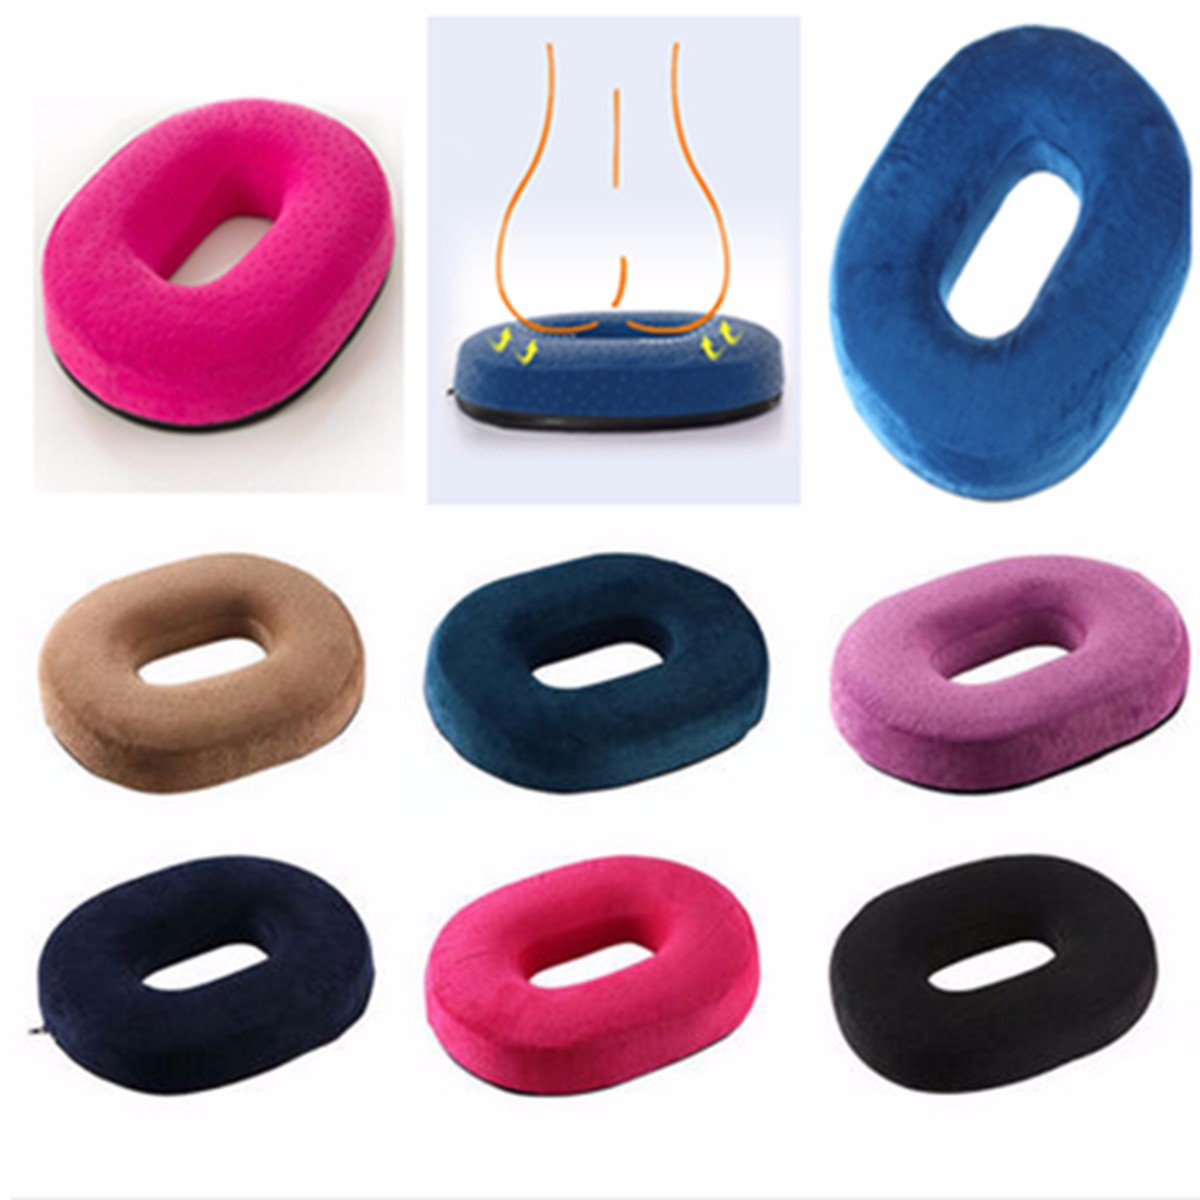 Soft Memory Foam Pain Relief Donut Ring Cushion Back Tailbone Pain Support Seat Pad Sponge Pillow for Home Office Car Chair